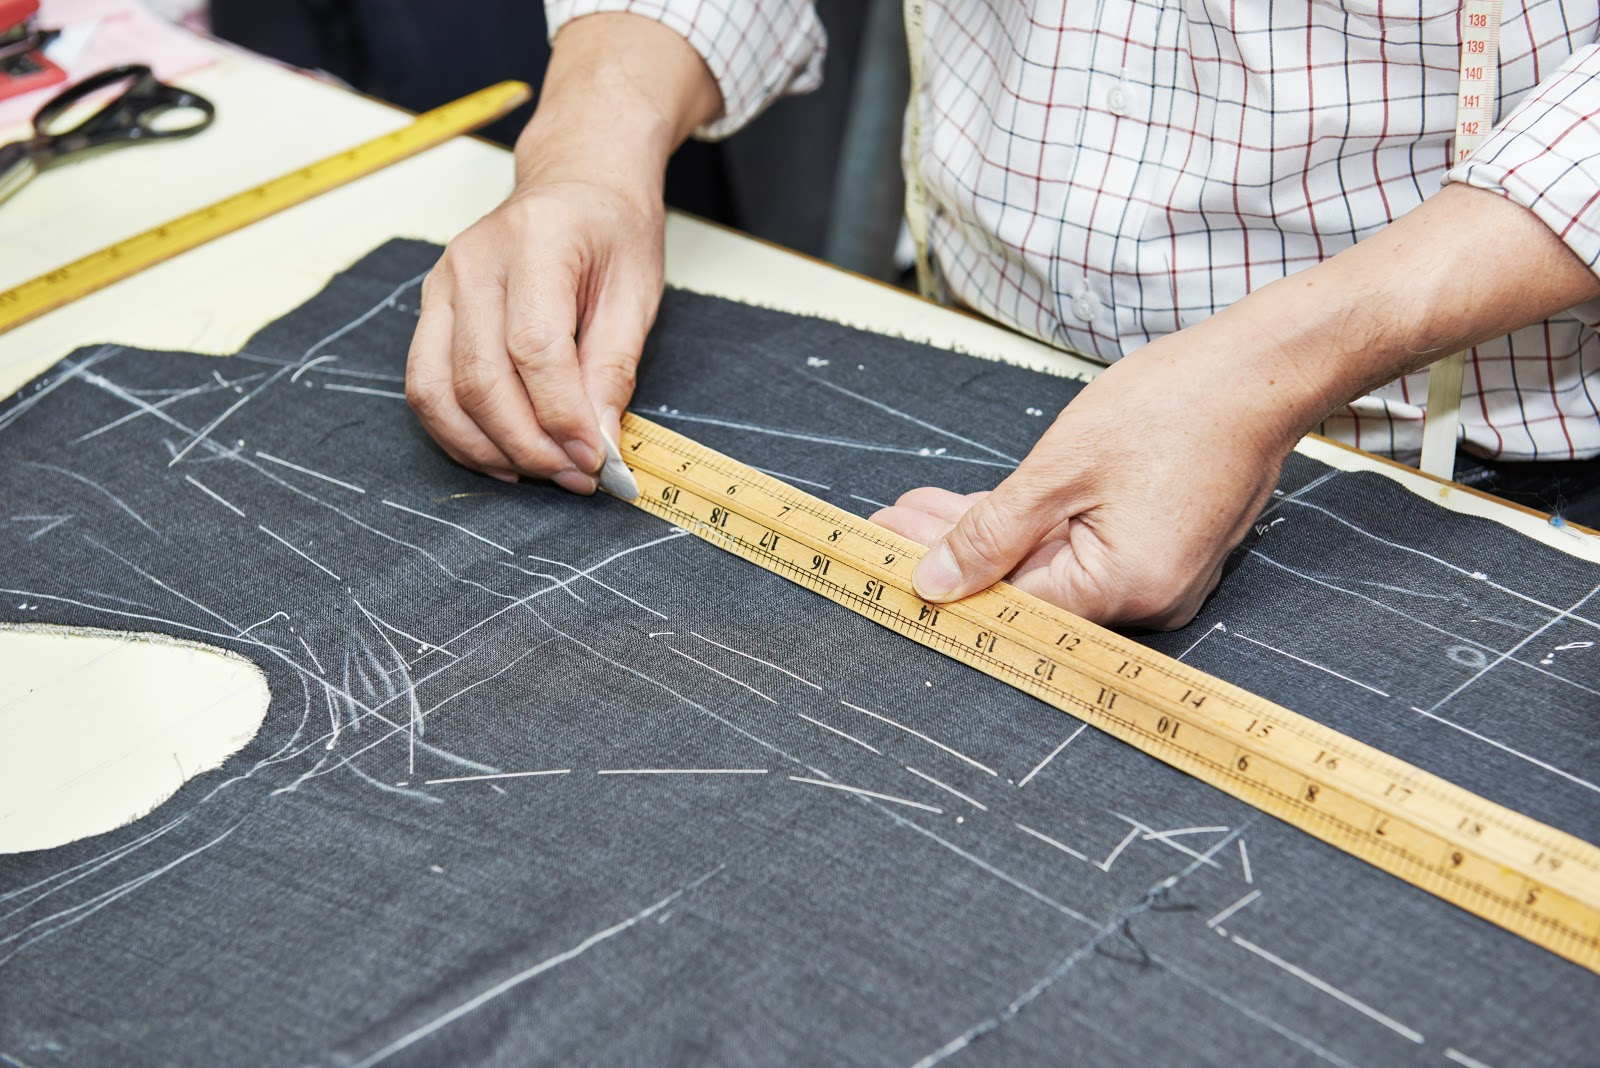 Singapore Tailor Guide_ tailor drafting with chalk and ruler